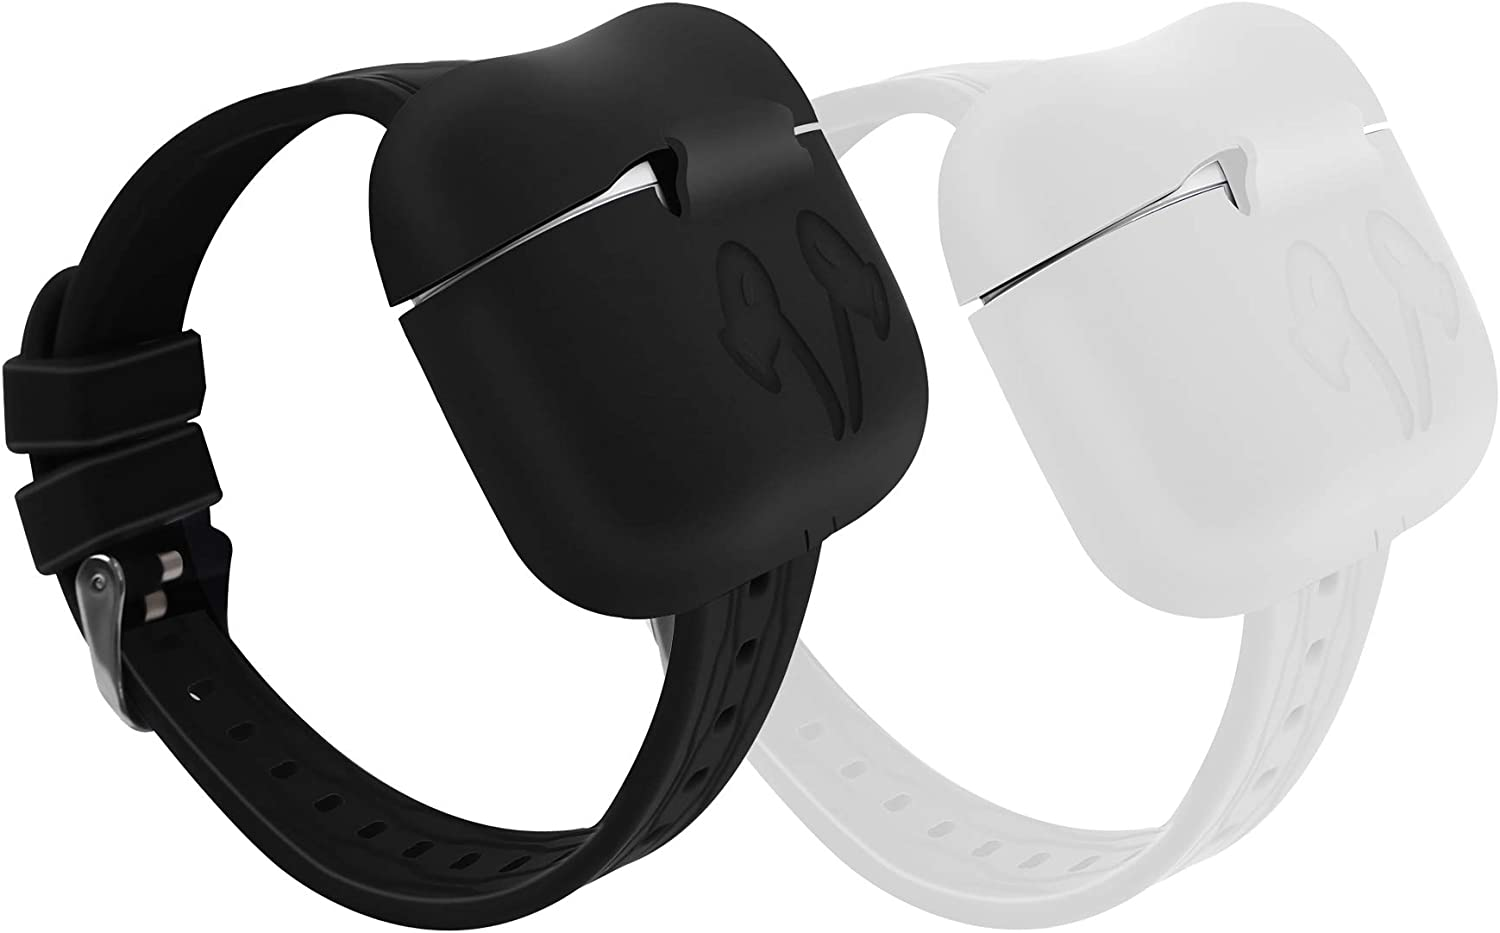 Compatible with Apple Airpods Pro Protector Case Wristband with Charging Case Protector, Elasticity Wristband Unique Design Soft Silicone Material Strap for Airpods Pro/Airpods 3 (Black&White)